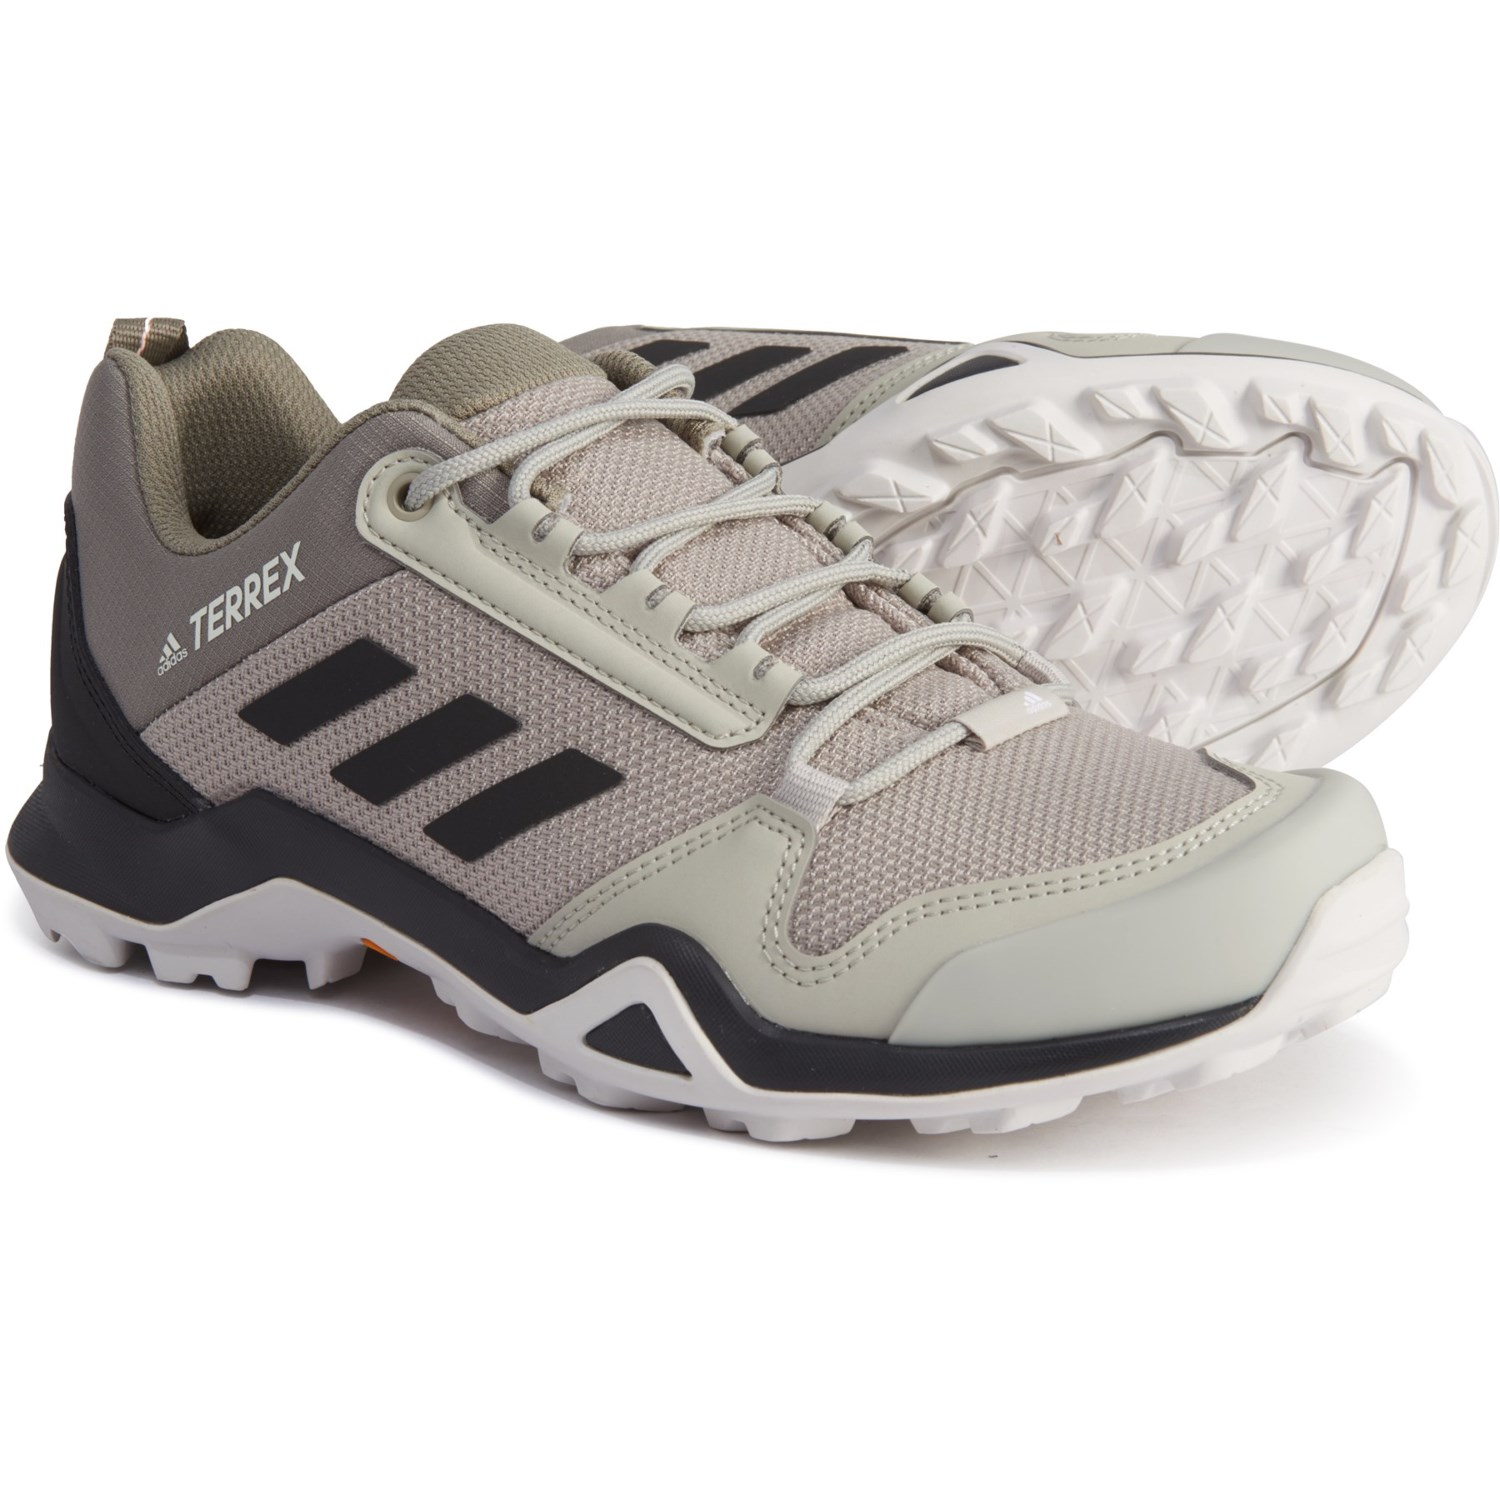 adidas outdoor men's ax3 hiking shoes